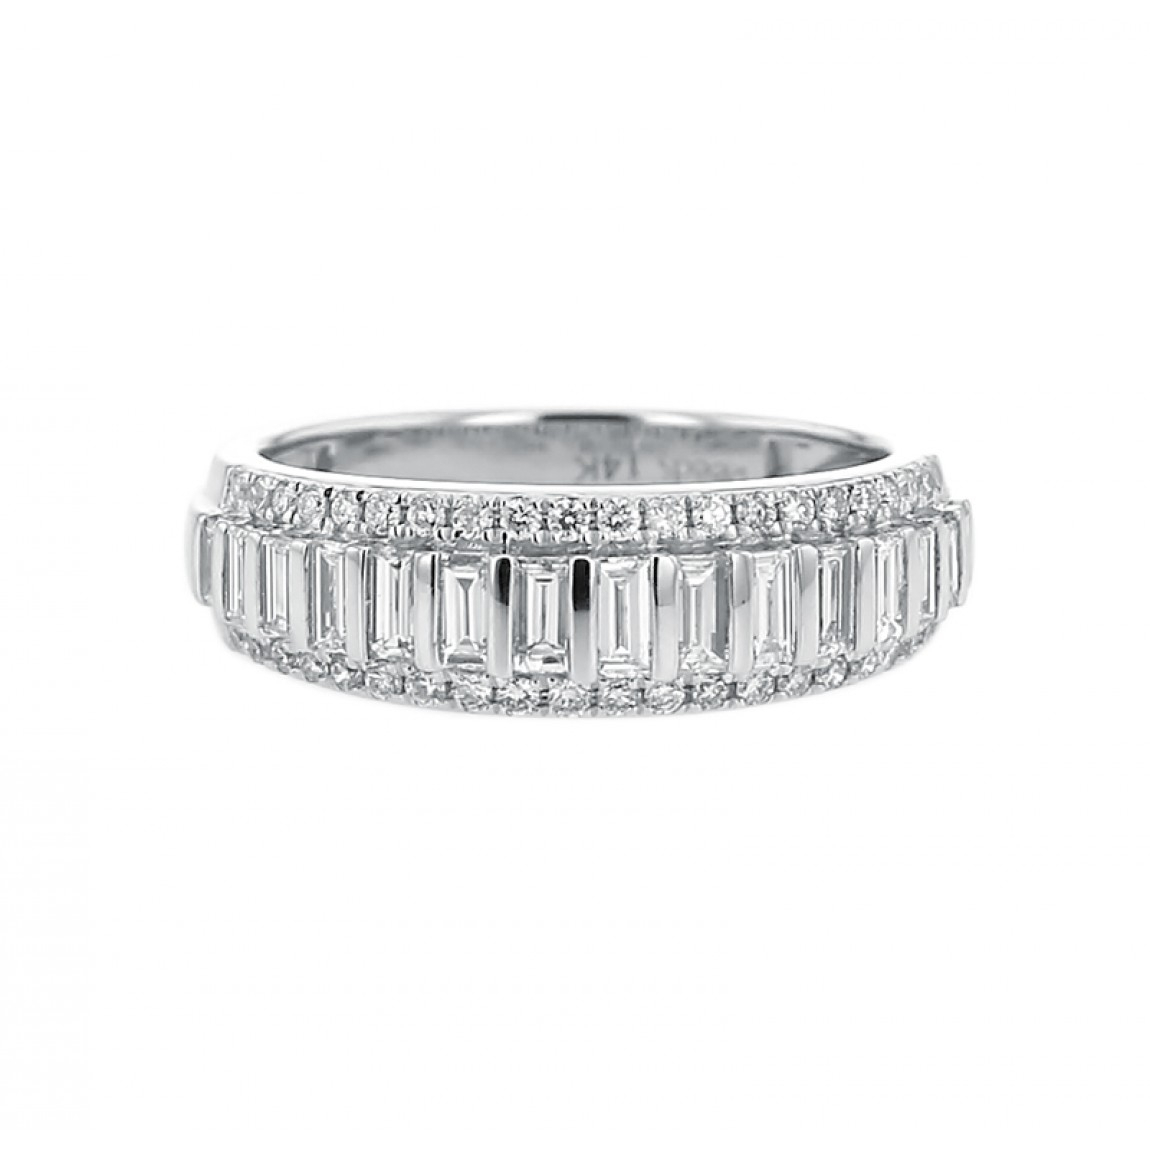 Diamond Wedding Band Ring, Baguette And Round, 14K Gold, .79Ct With Regard To Most Recently Released Round And Baguette Diamond Anniversary Bands In White Gold (Gallery 6 of 25)